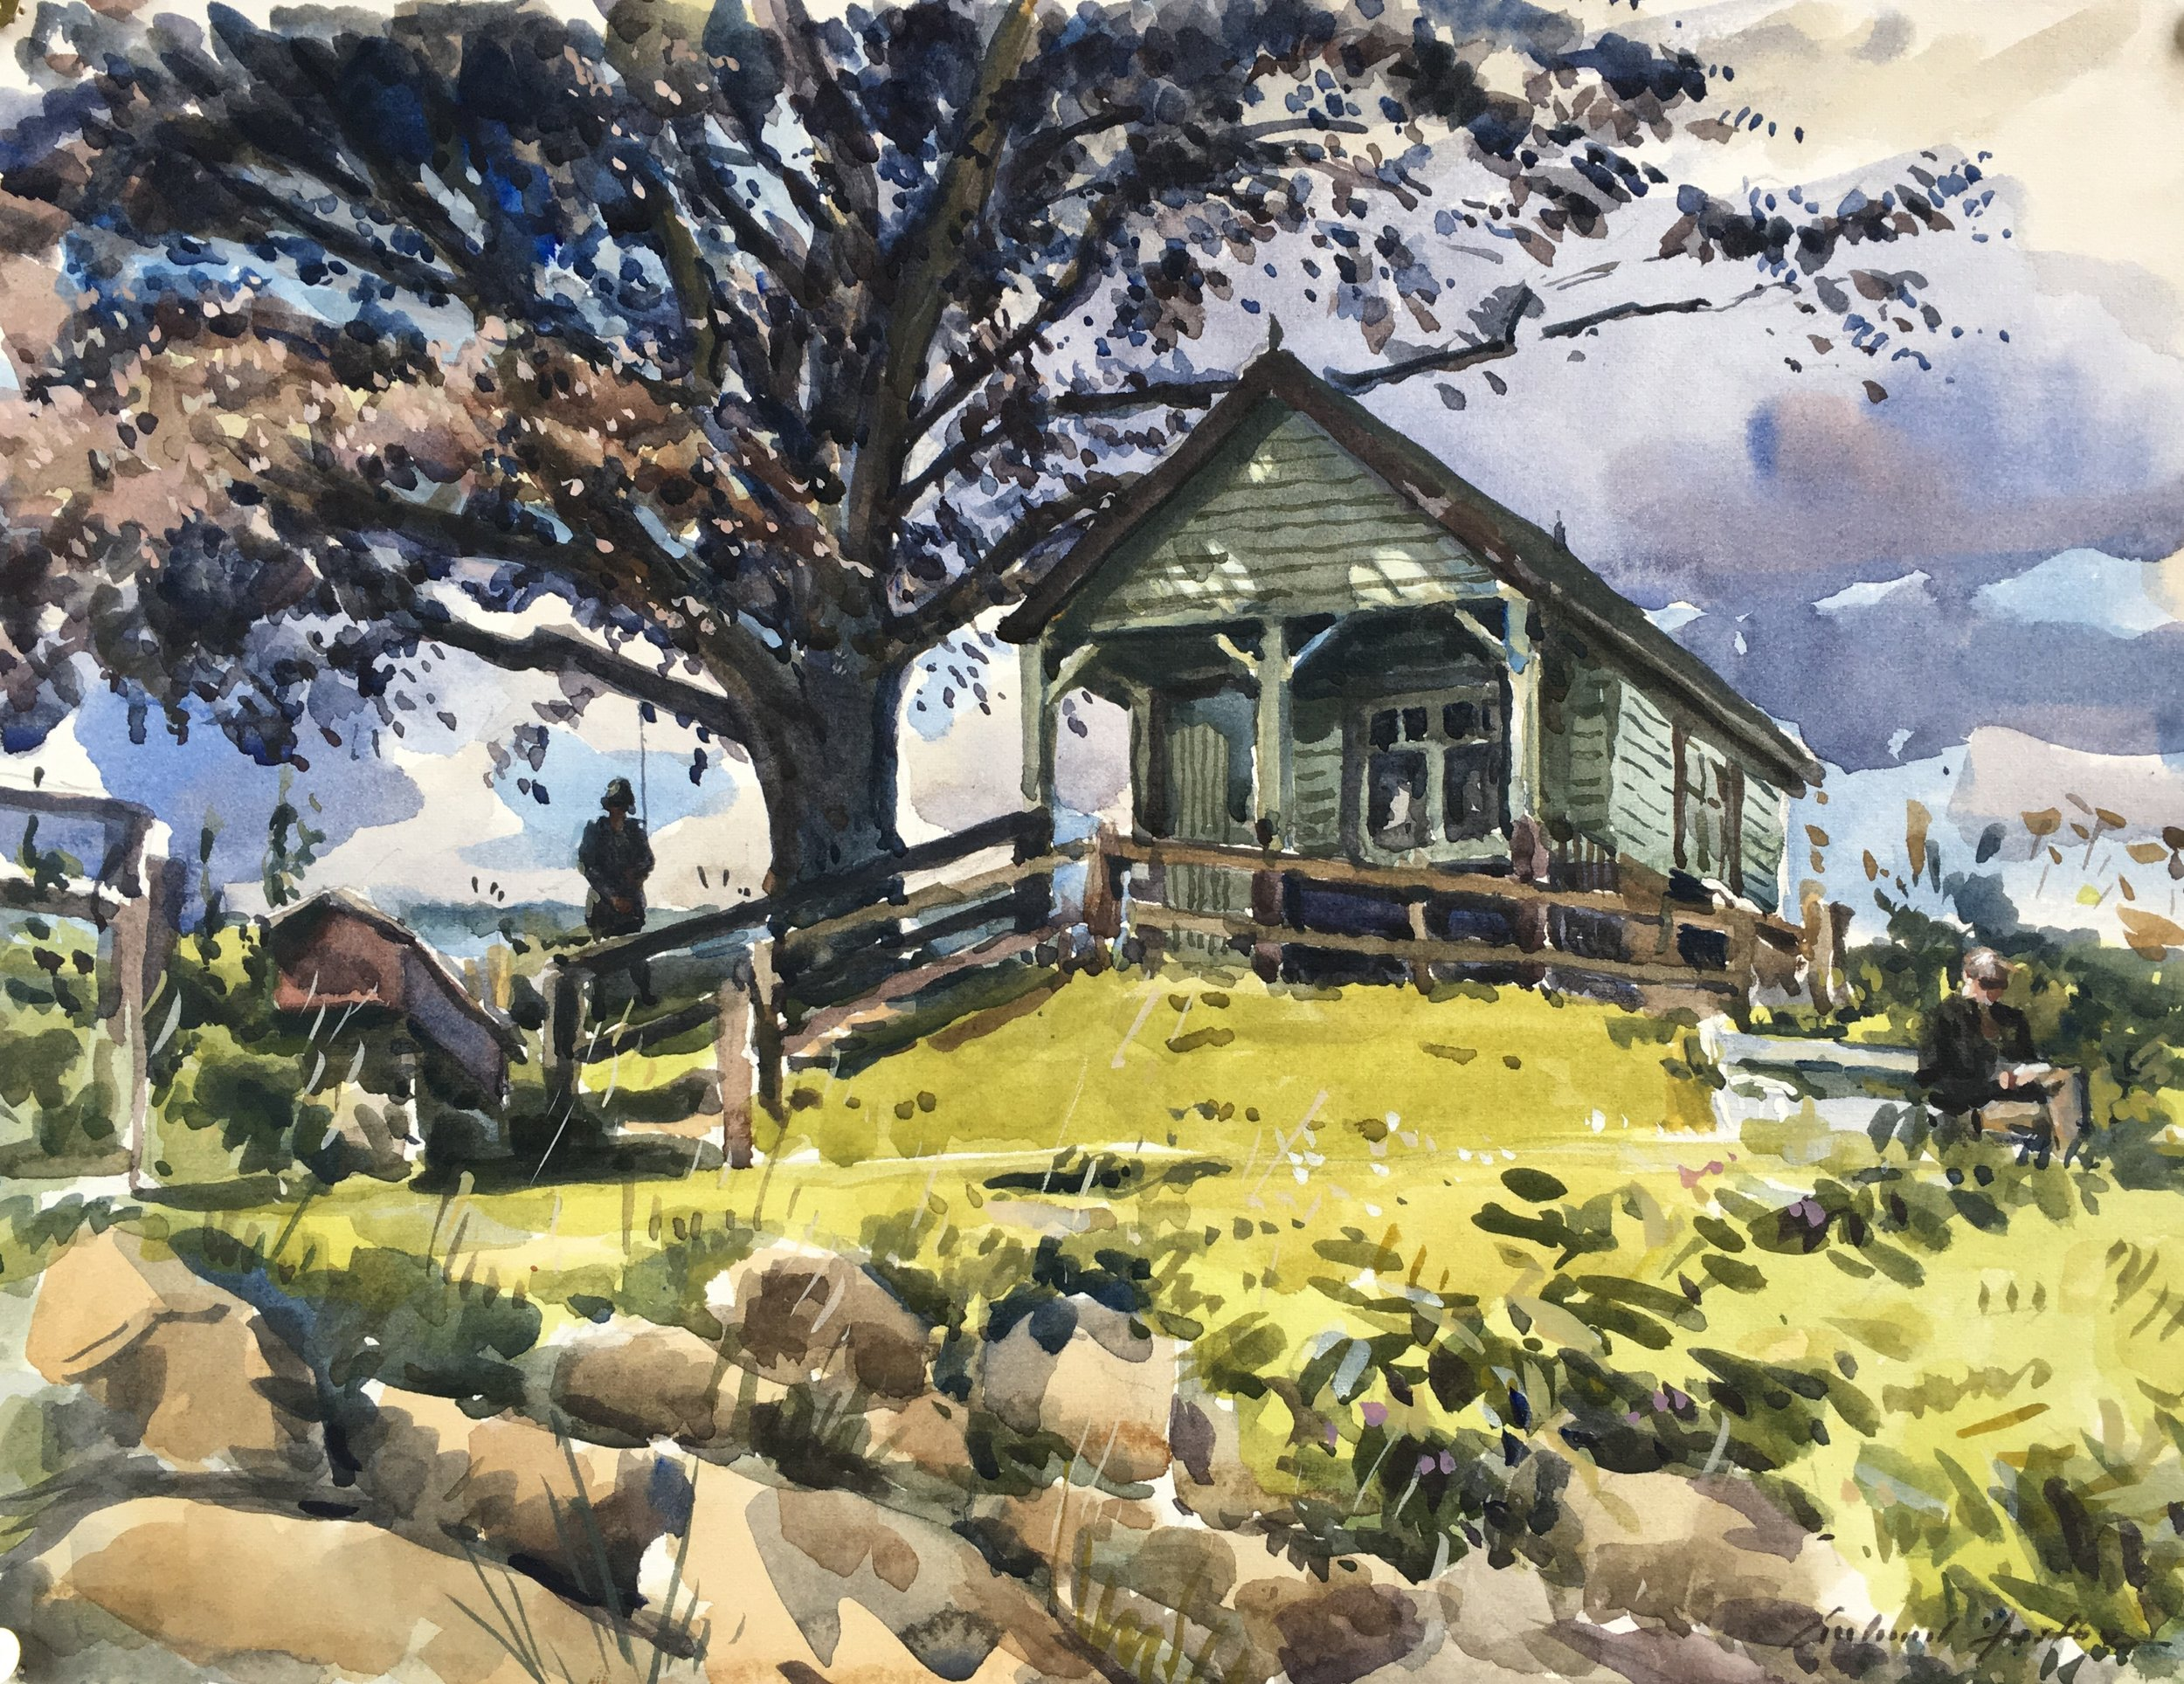 The Hut with Gina, watercolour, 10 x 14.JPG